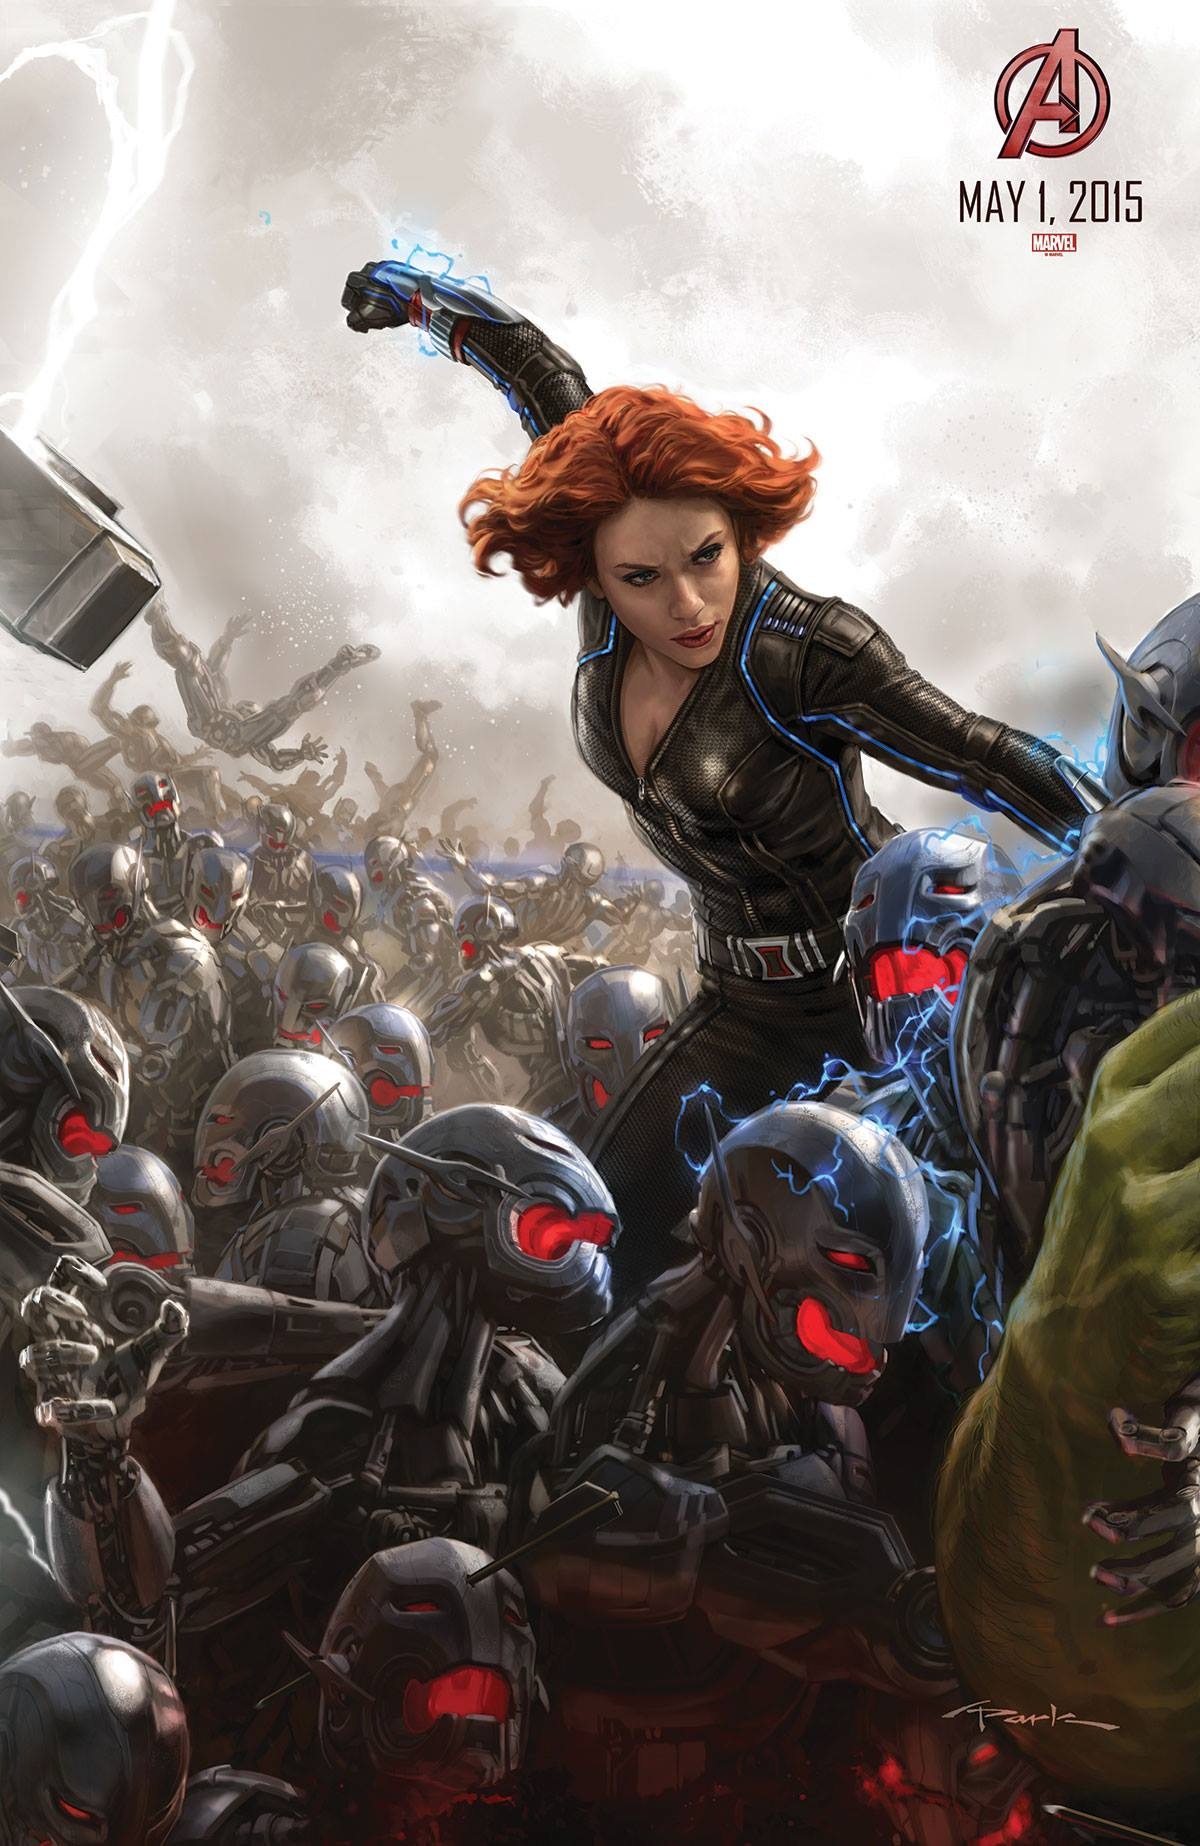 Avengers Age of Ultron-Official Poster Banner CONCEPT ART-25JULHO2014-04